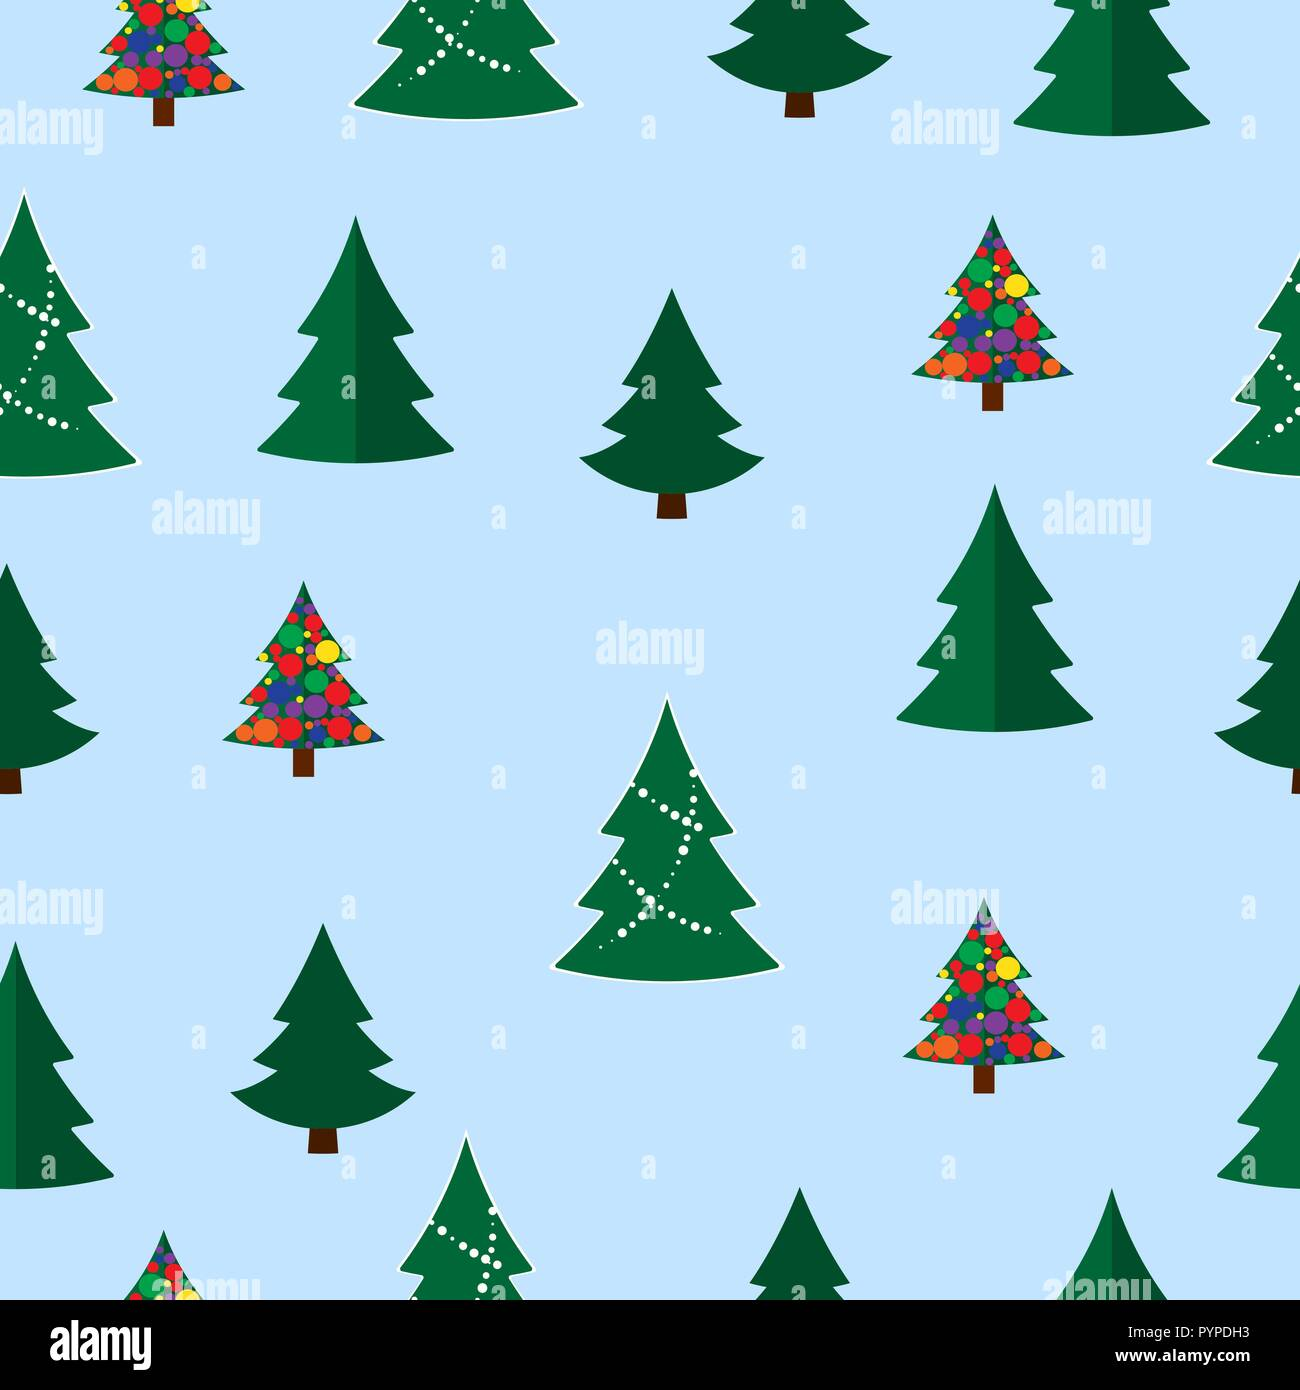 Christmas Tree Pattern.Vector Christmas Tree Seamless Pattern Winter Forest Pine